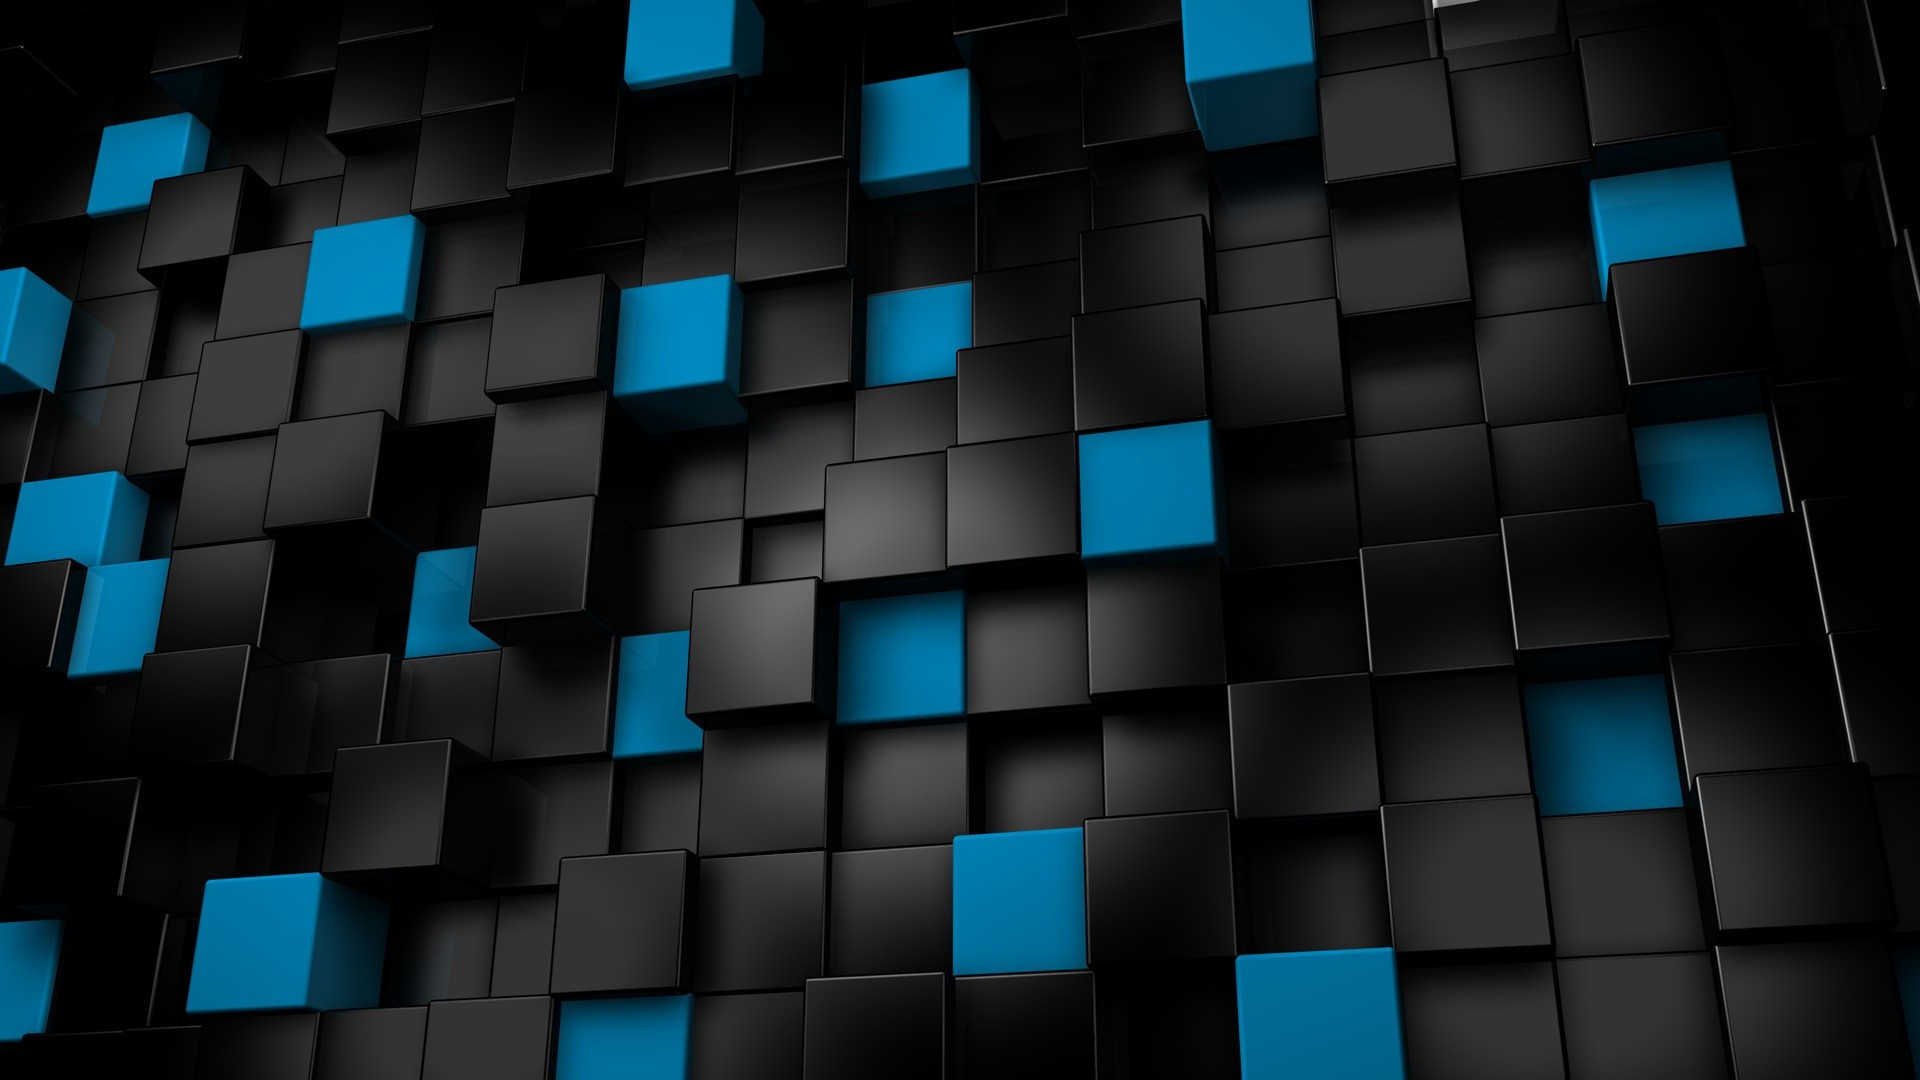 Blue And Black Background 1 Download Free High Resolution